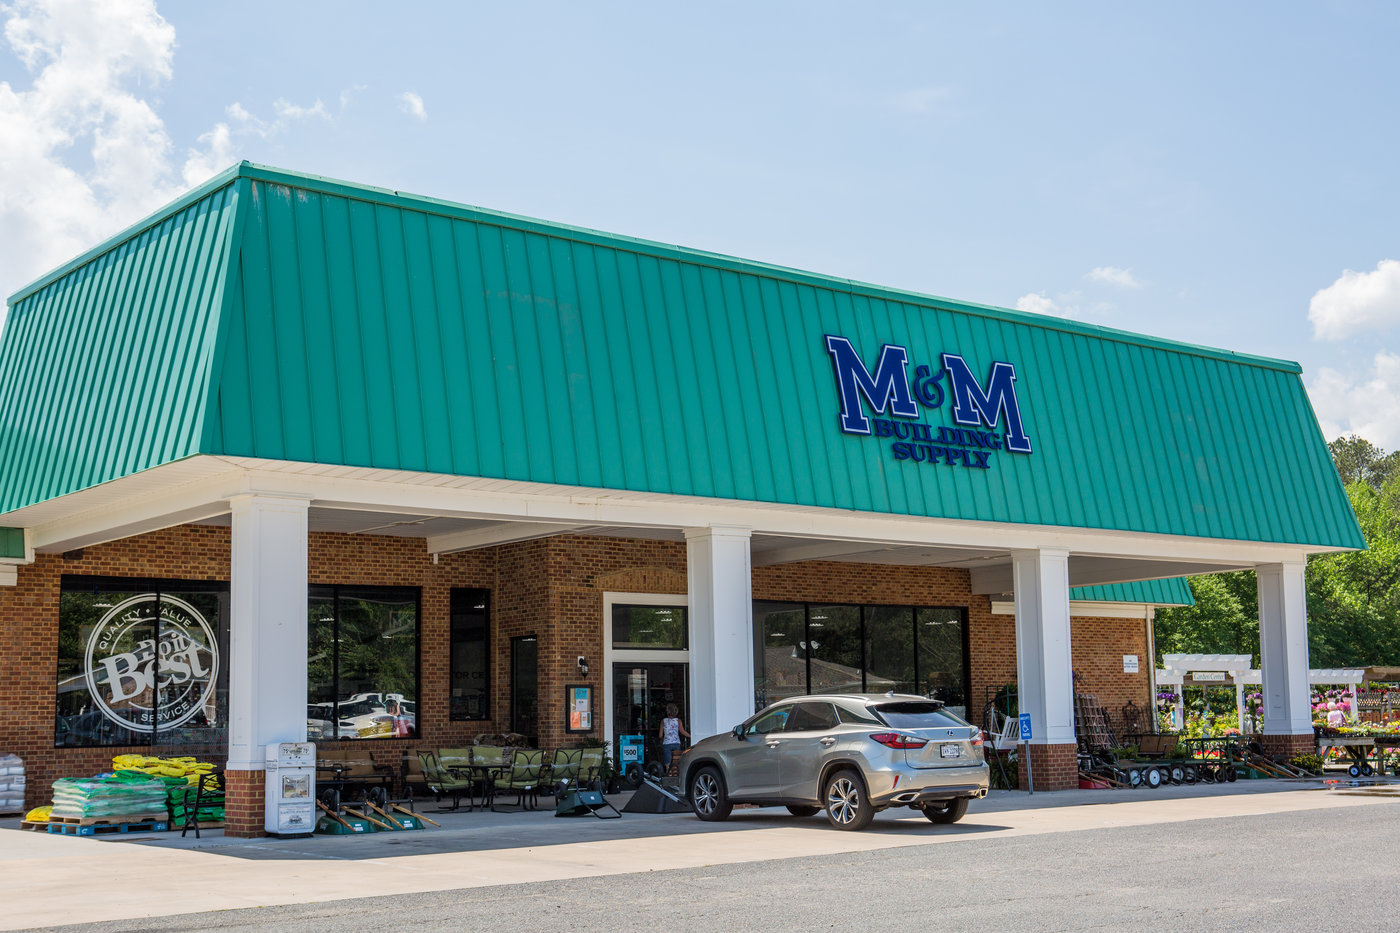 M&M Building Supply's third store in Mathews, Va., opened in March 2019.